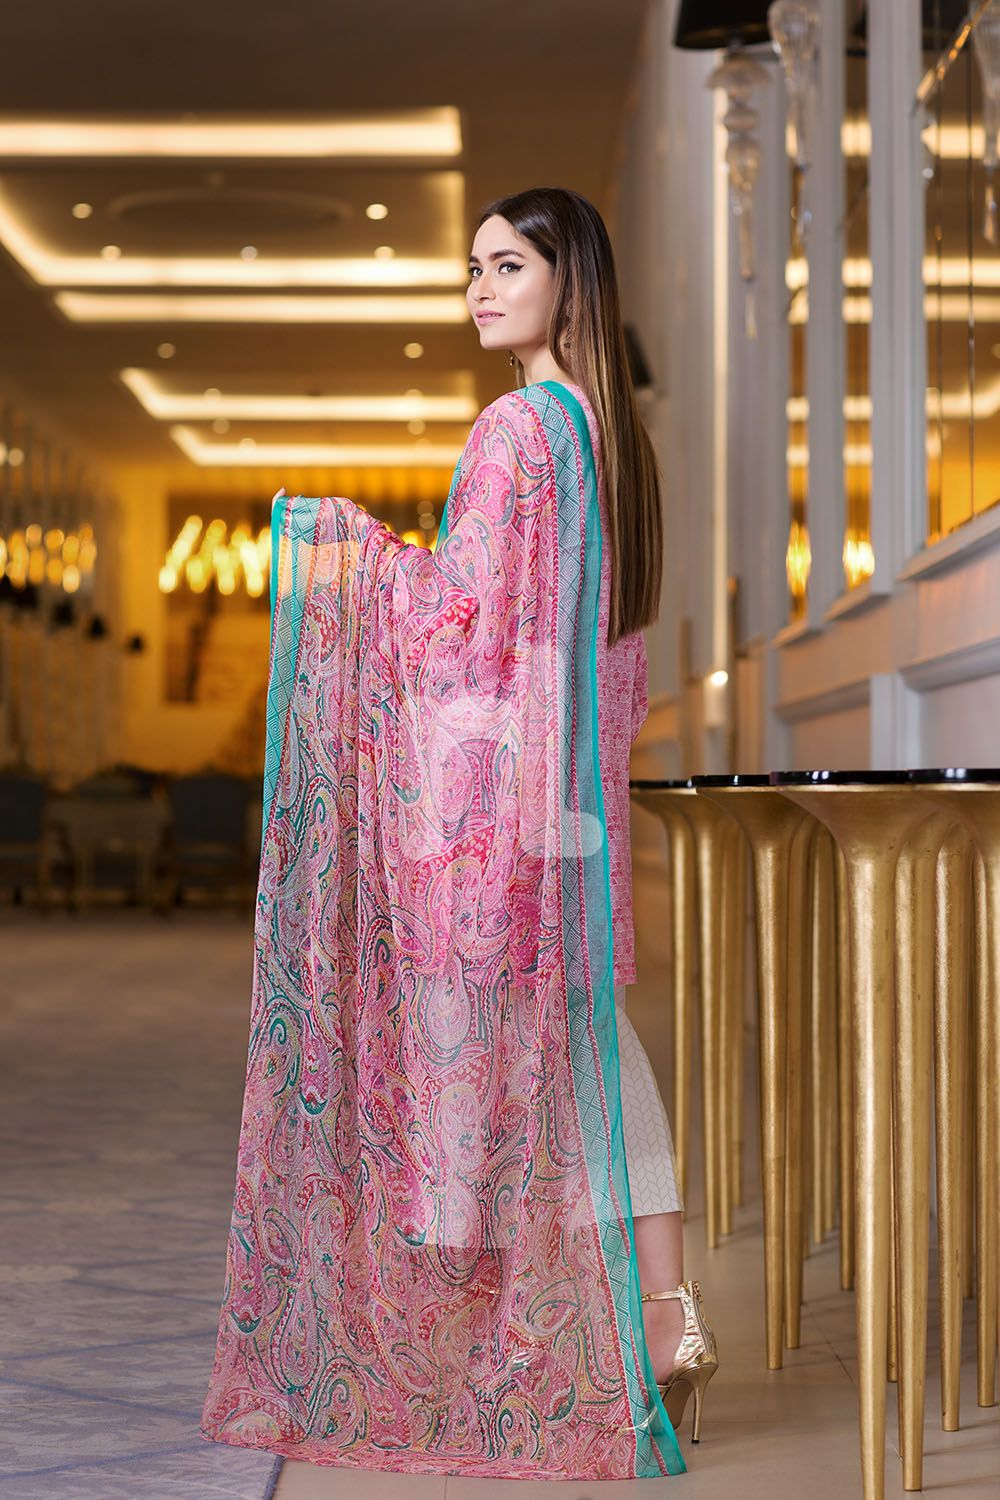 6708335e394 Buy this elegant printed lawn dress at a best price by Nishat Linen  embroidered casuals 2018 wintercollection  blackfriday  readytowear   pretwear ...